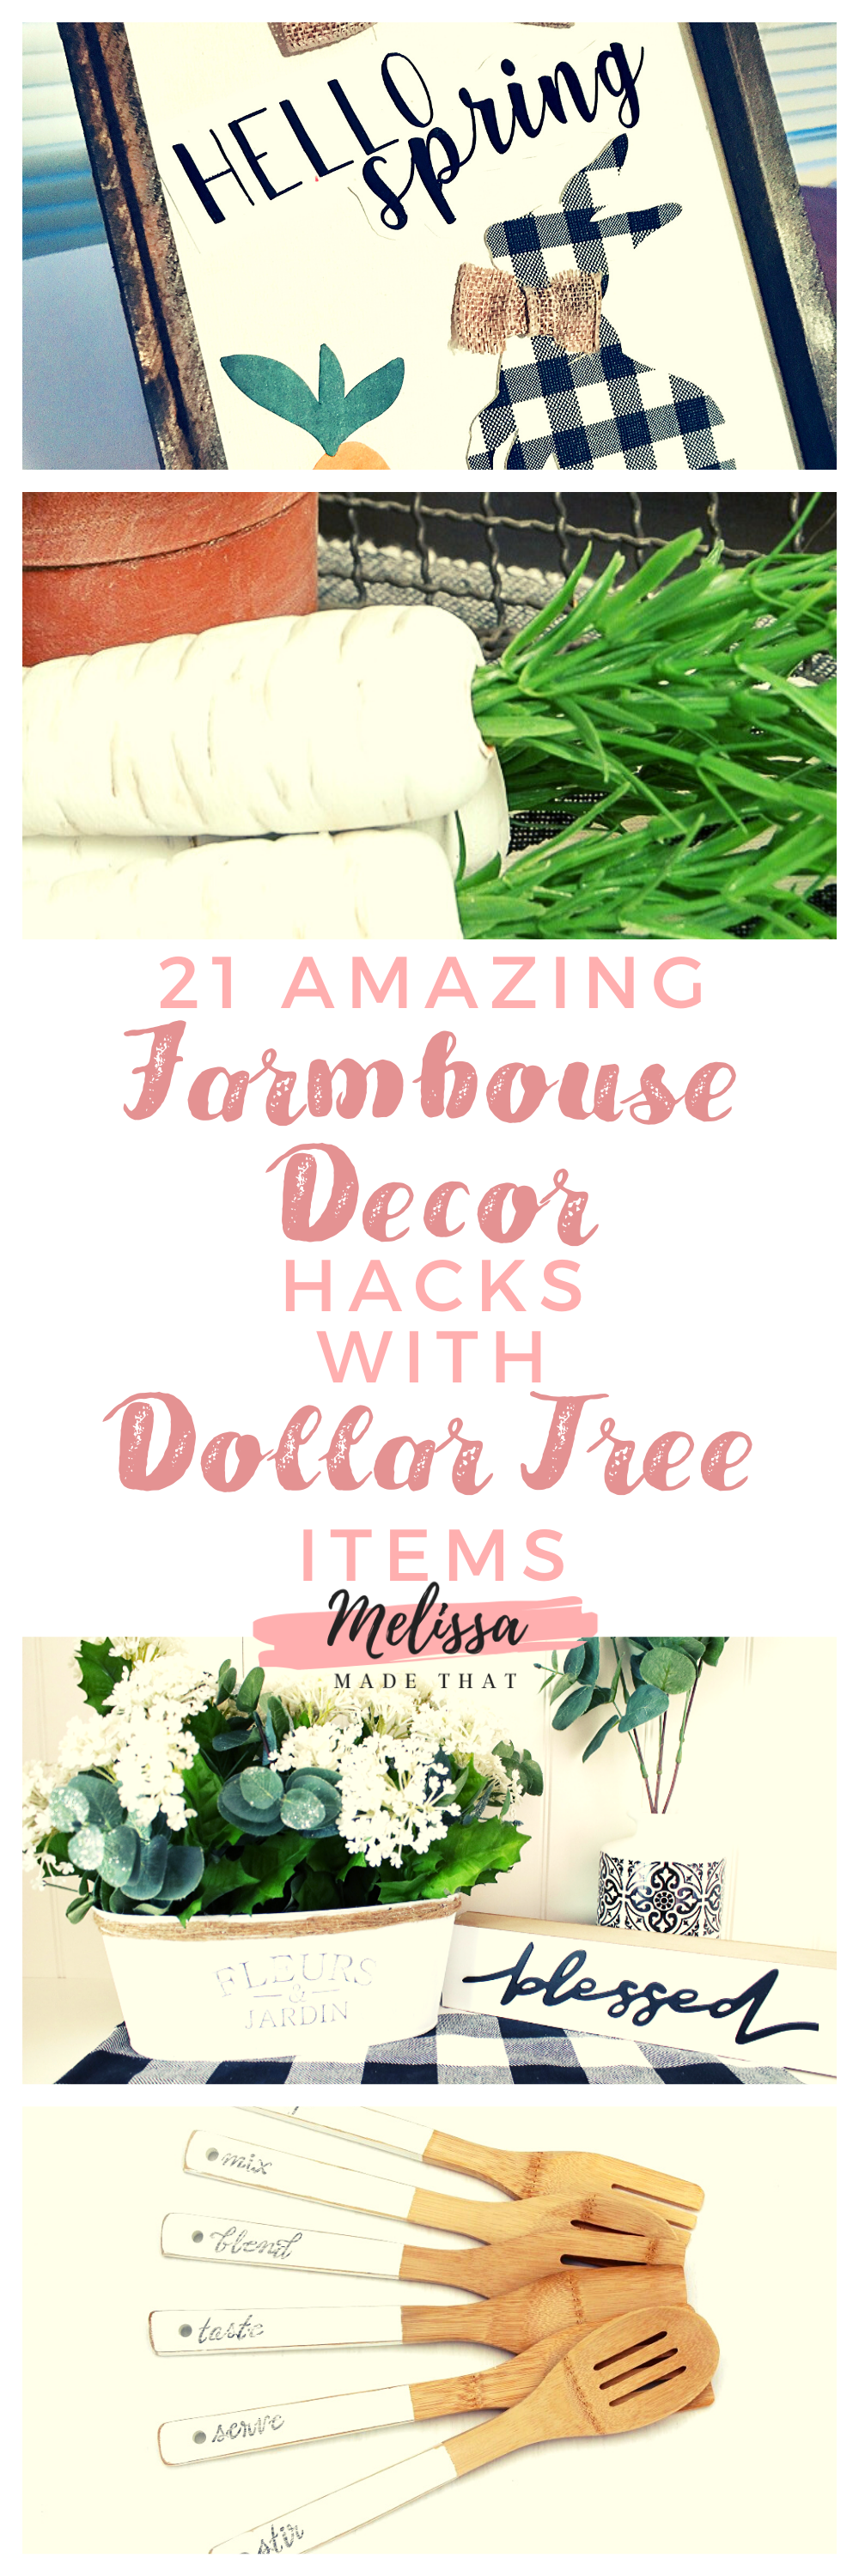 Easy DIY projects using supplies from the Dollar Tree to create on-point farmhouse decor looks. Using Dollar Tree supplies, you can create the farmhouse of your dreams using the tutorials in this post. The farmhouse trend is a big deal right now, and with these ideas, you can make your own farmhouse decorations for your home. #diydecor #farmhousedecor #cheapfarmhousedecor #farmhouse #homedecor